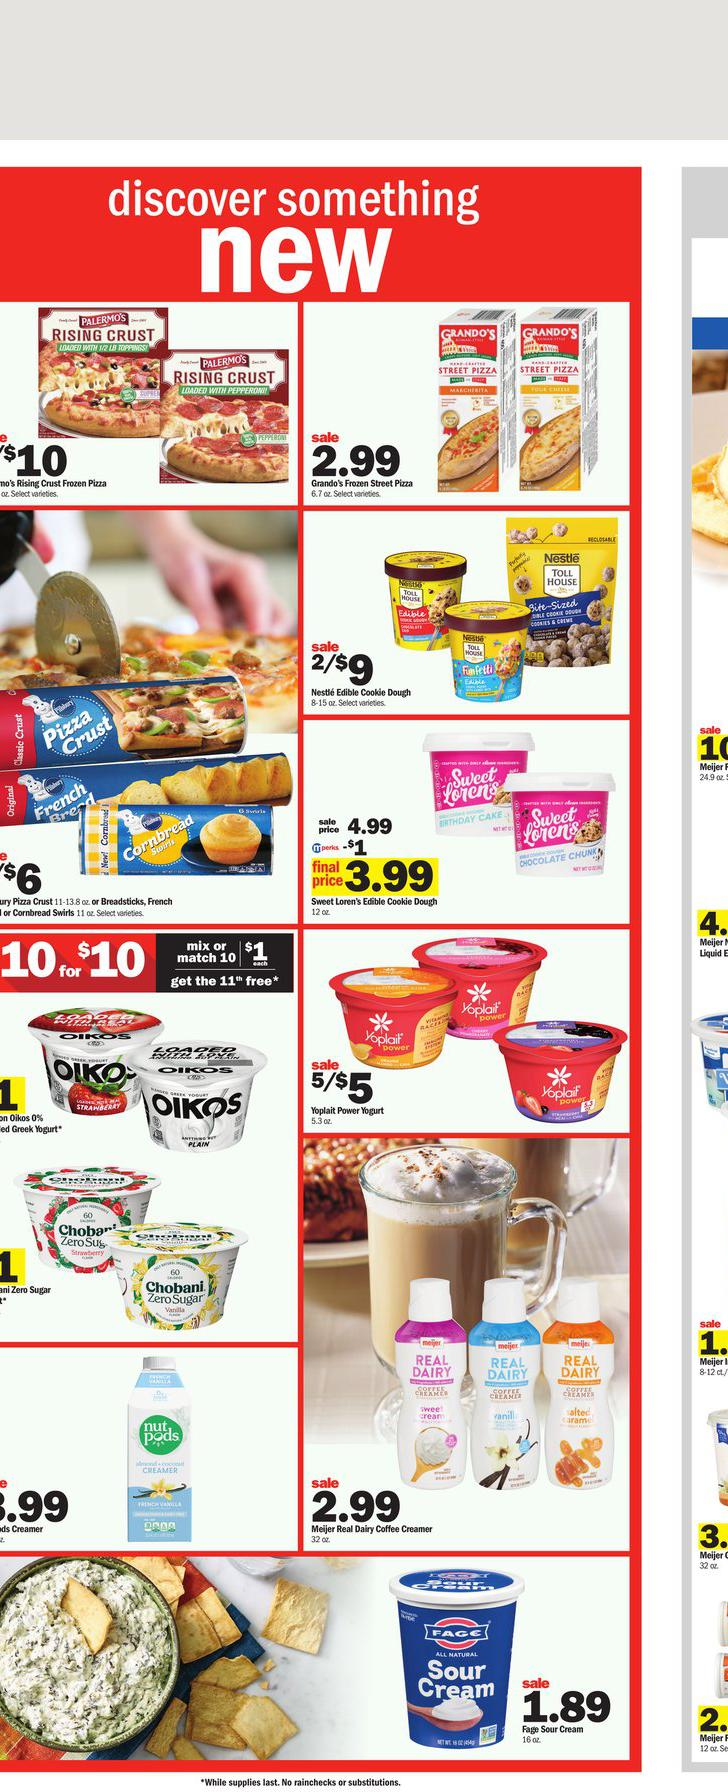 12.09.2021 Meijer ad 10. page